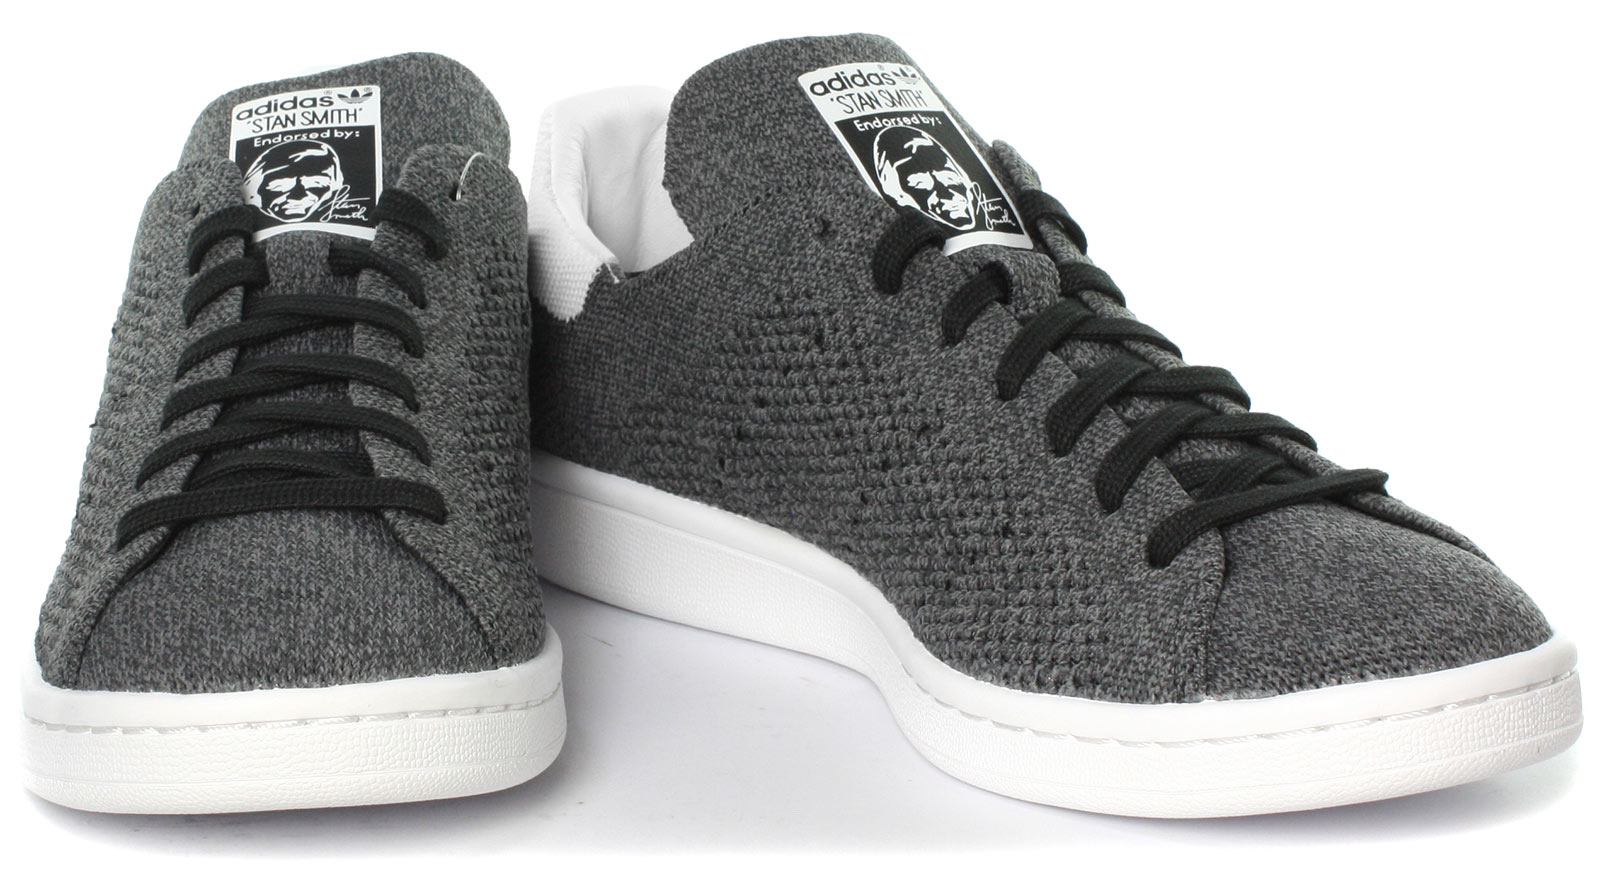 new style 1e796 18c2e adidas Stan Smith Primeknit Originals Trainers Shoes Black White Tennis  BZ0118 UK 8. About this product. Picture 1 of 6 Picture 2 of 6 ...